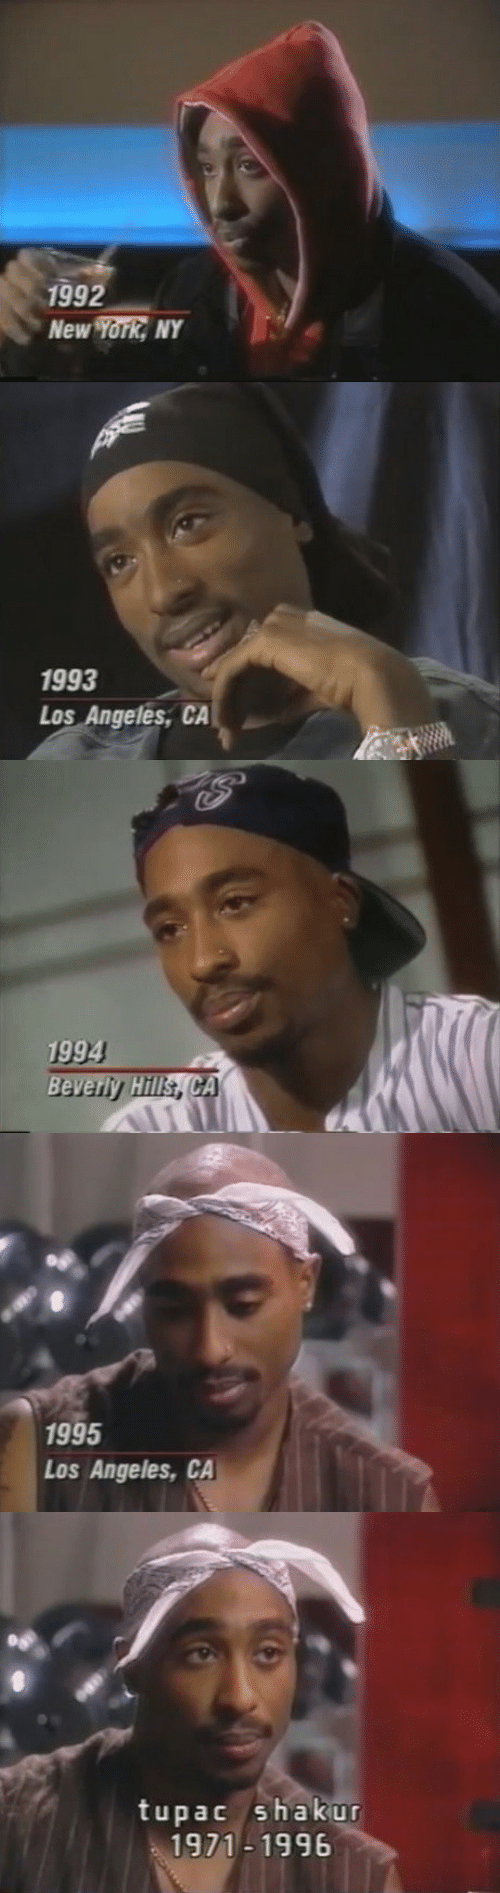 New York, Tupac Shakur, and Los Angeles: 992  New York NY   1993  Los Angeles, CA   1994   1995  Los Angeles, CA   tupac shakur  1971-1996